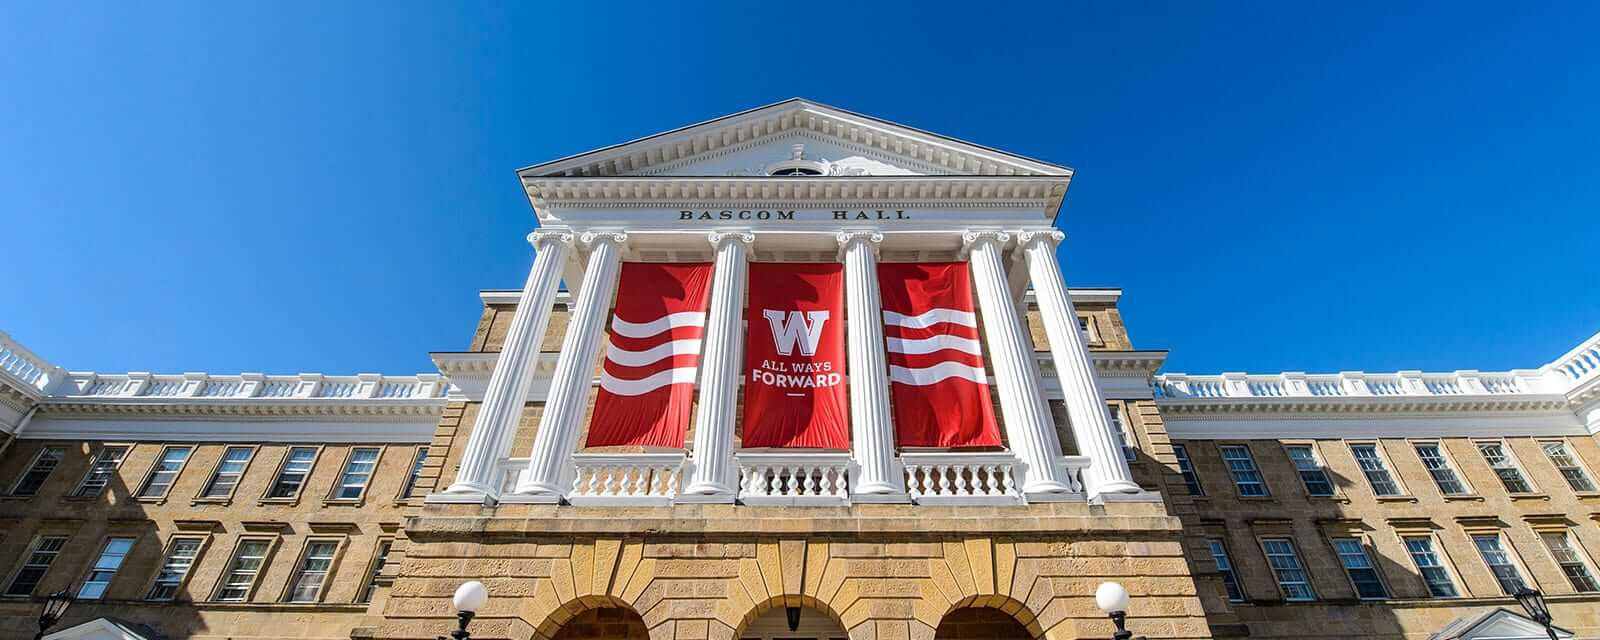 Photograph of the University of Wisconsin